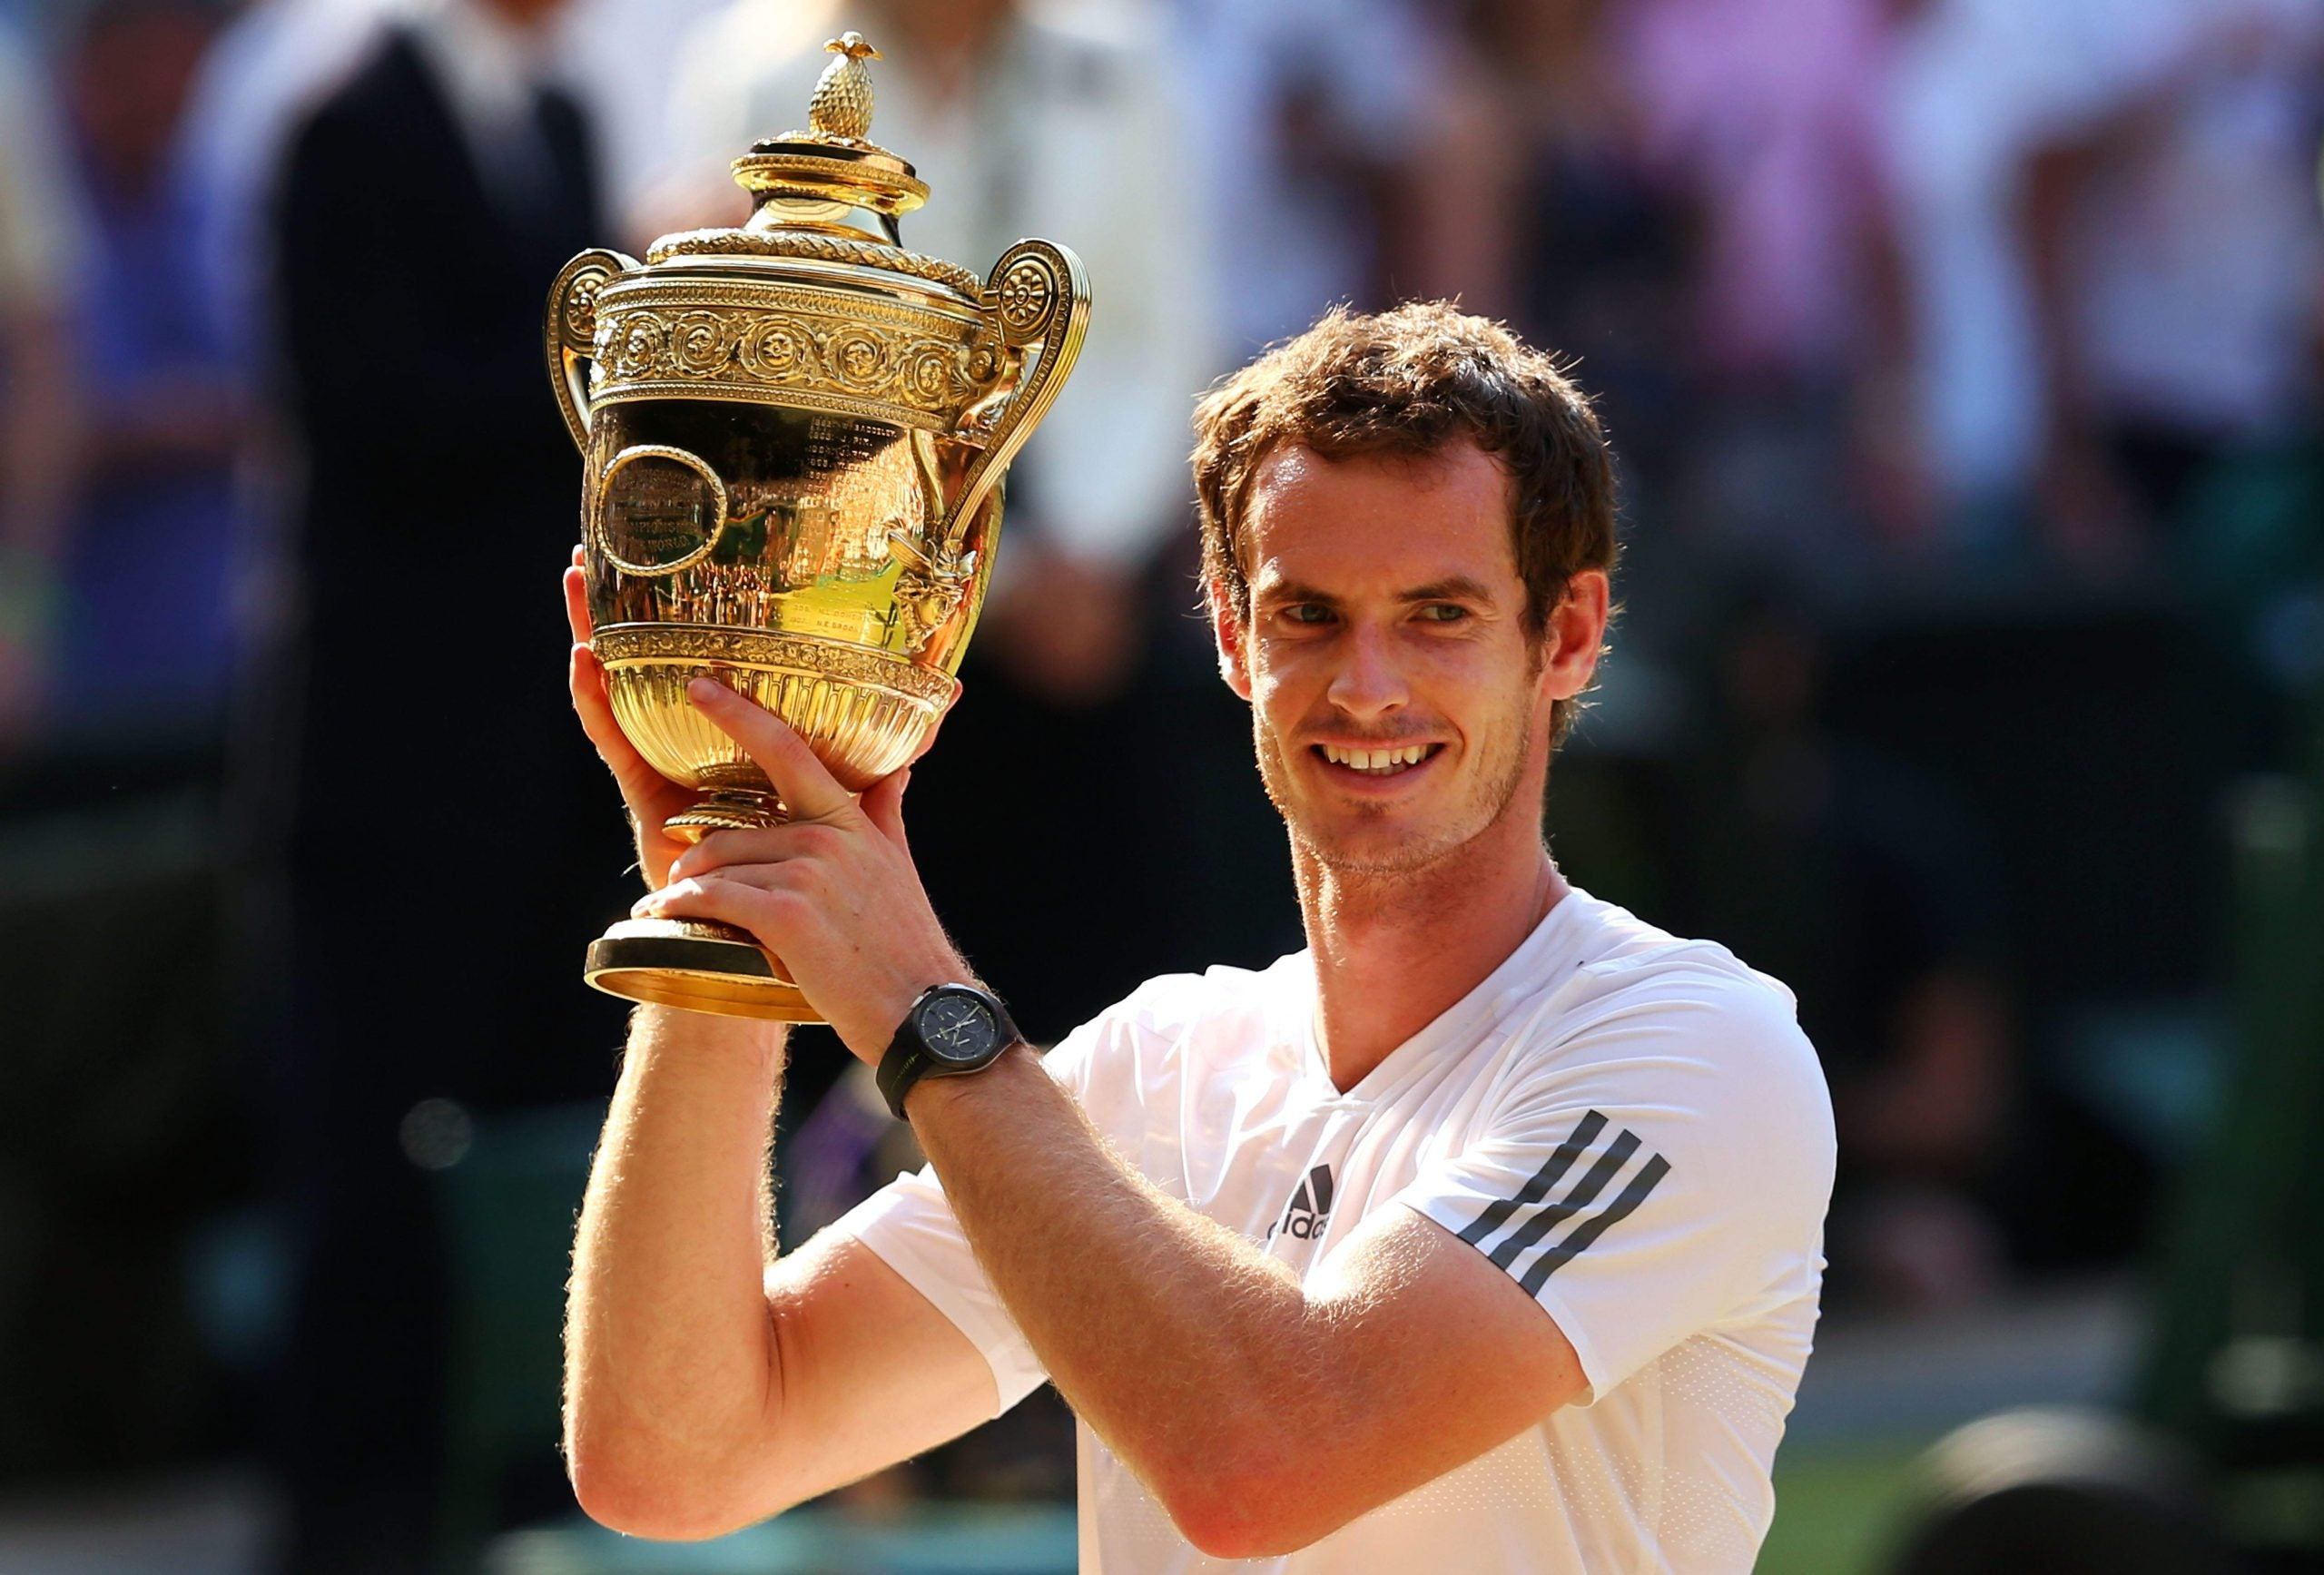 Andy Murray has stupendous steel and discipline - and yet...